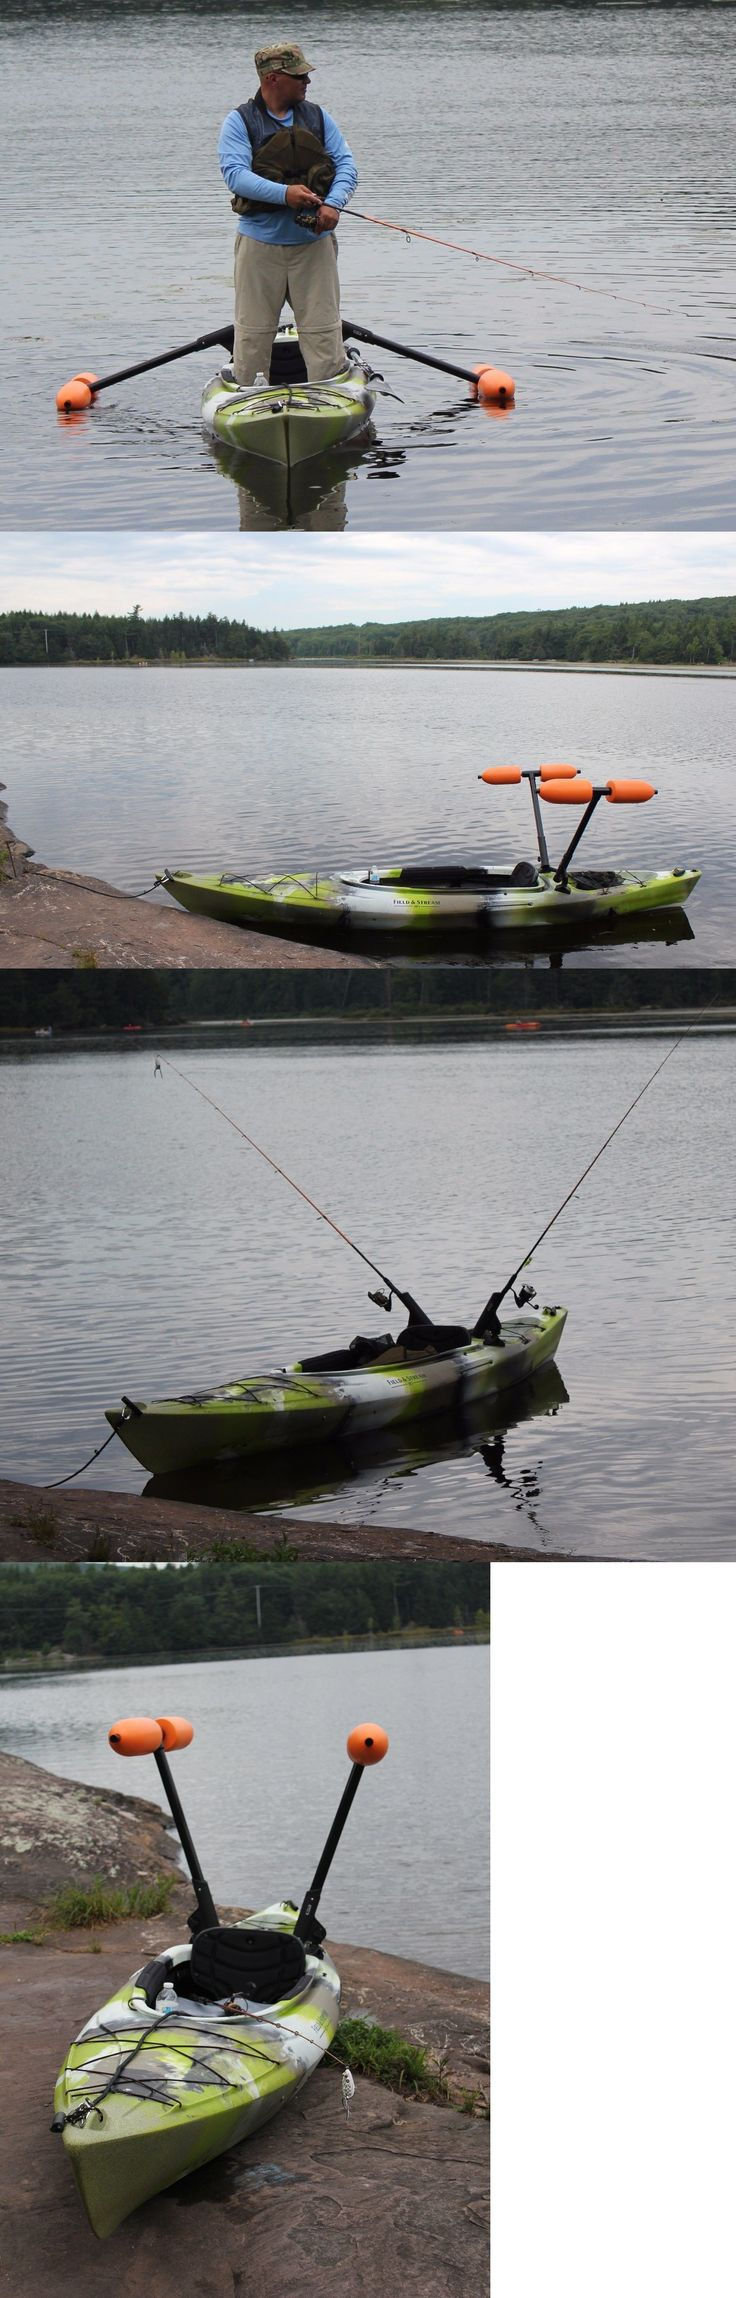 17 best ideas about kayak outriggers on pinterest kayak for Kayak accessories fishing